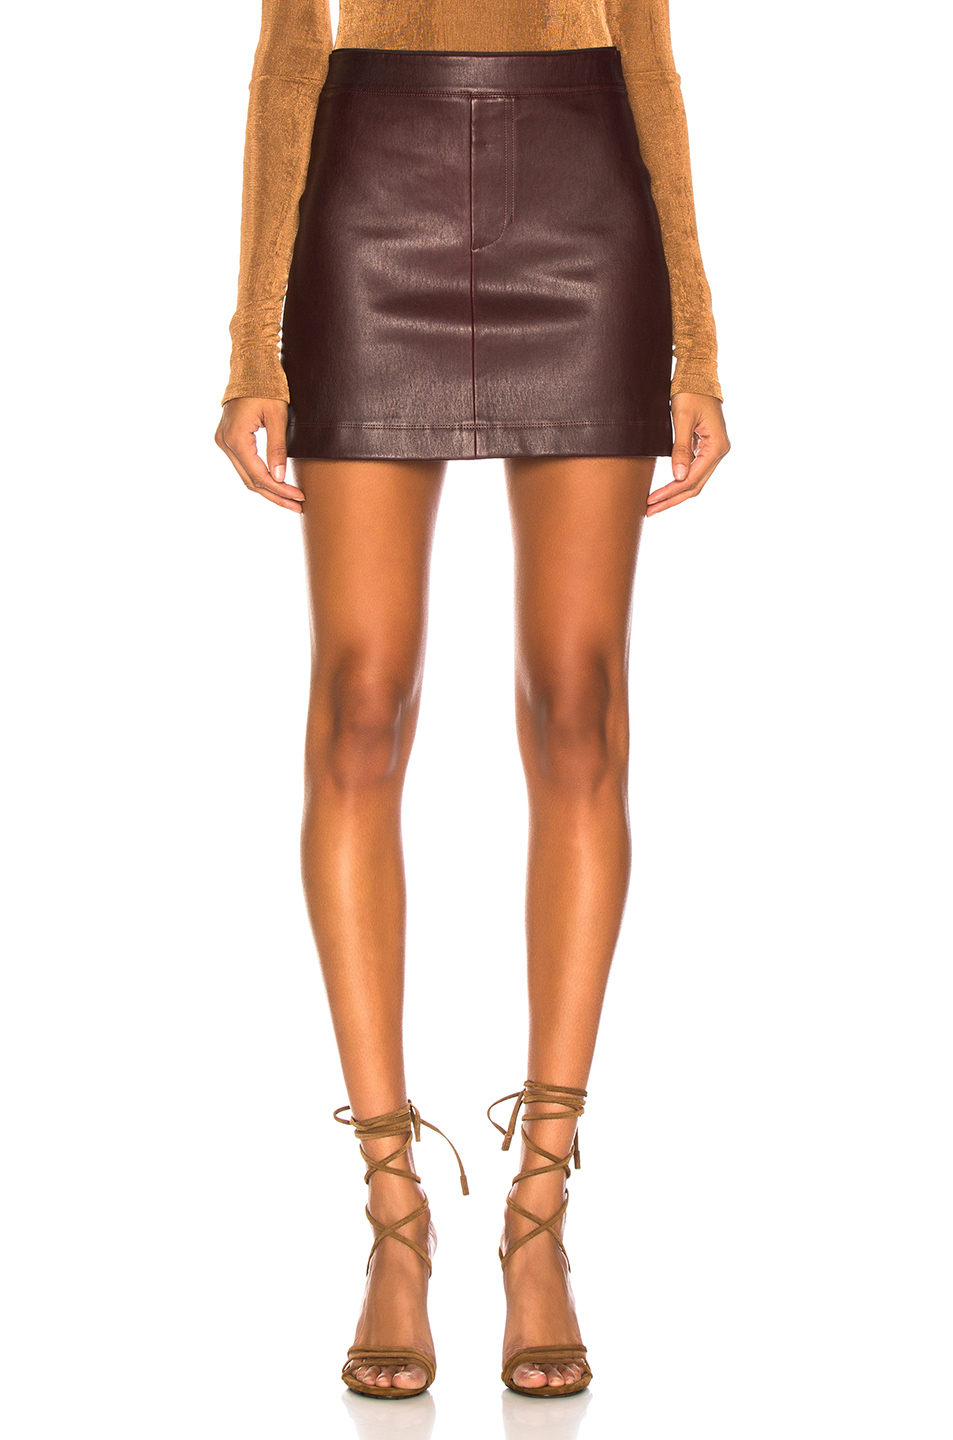 e50415ce30a5 Buy Original Helmut Lang Stretch Leather Mini Skirt at Indonesia ...